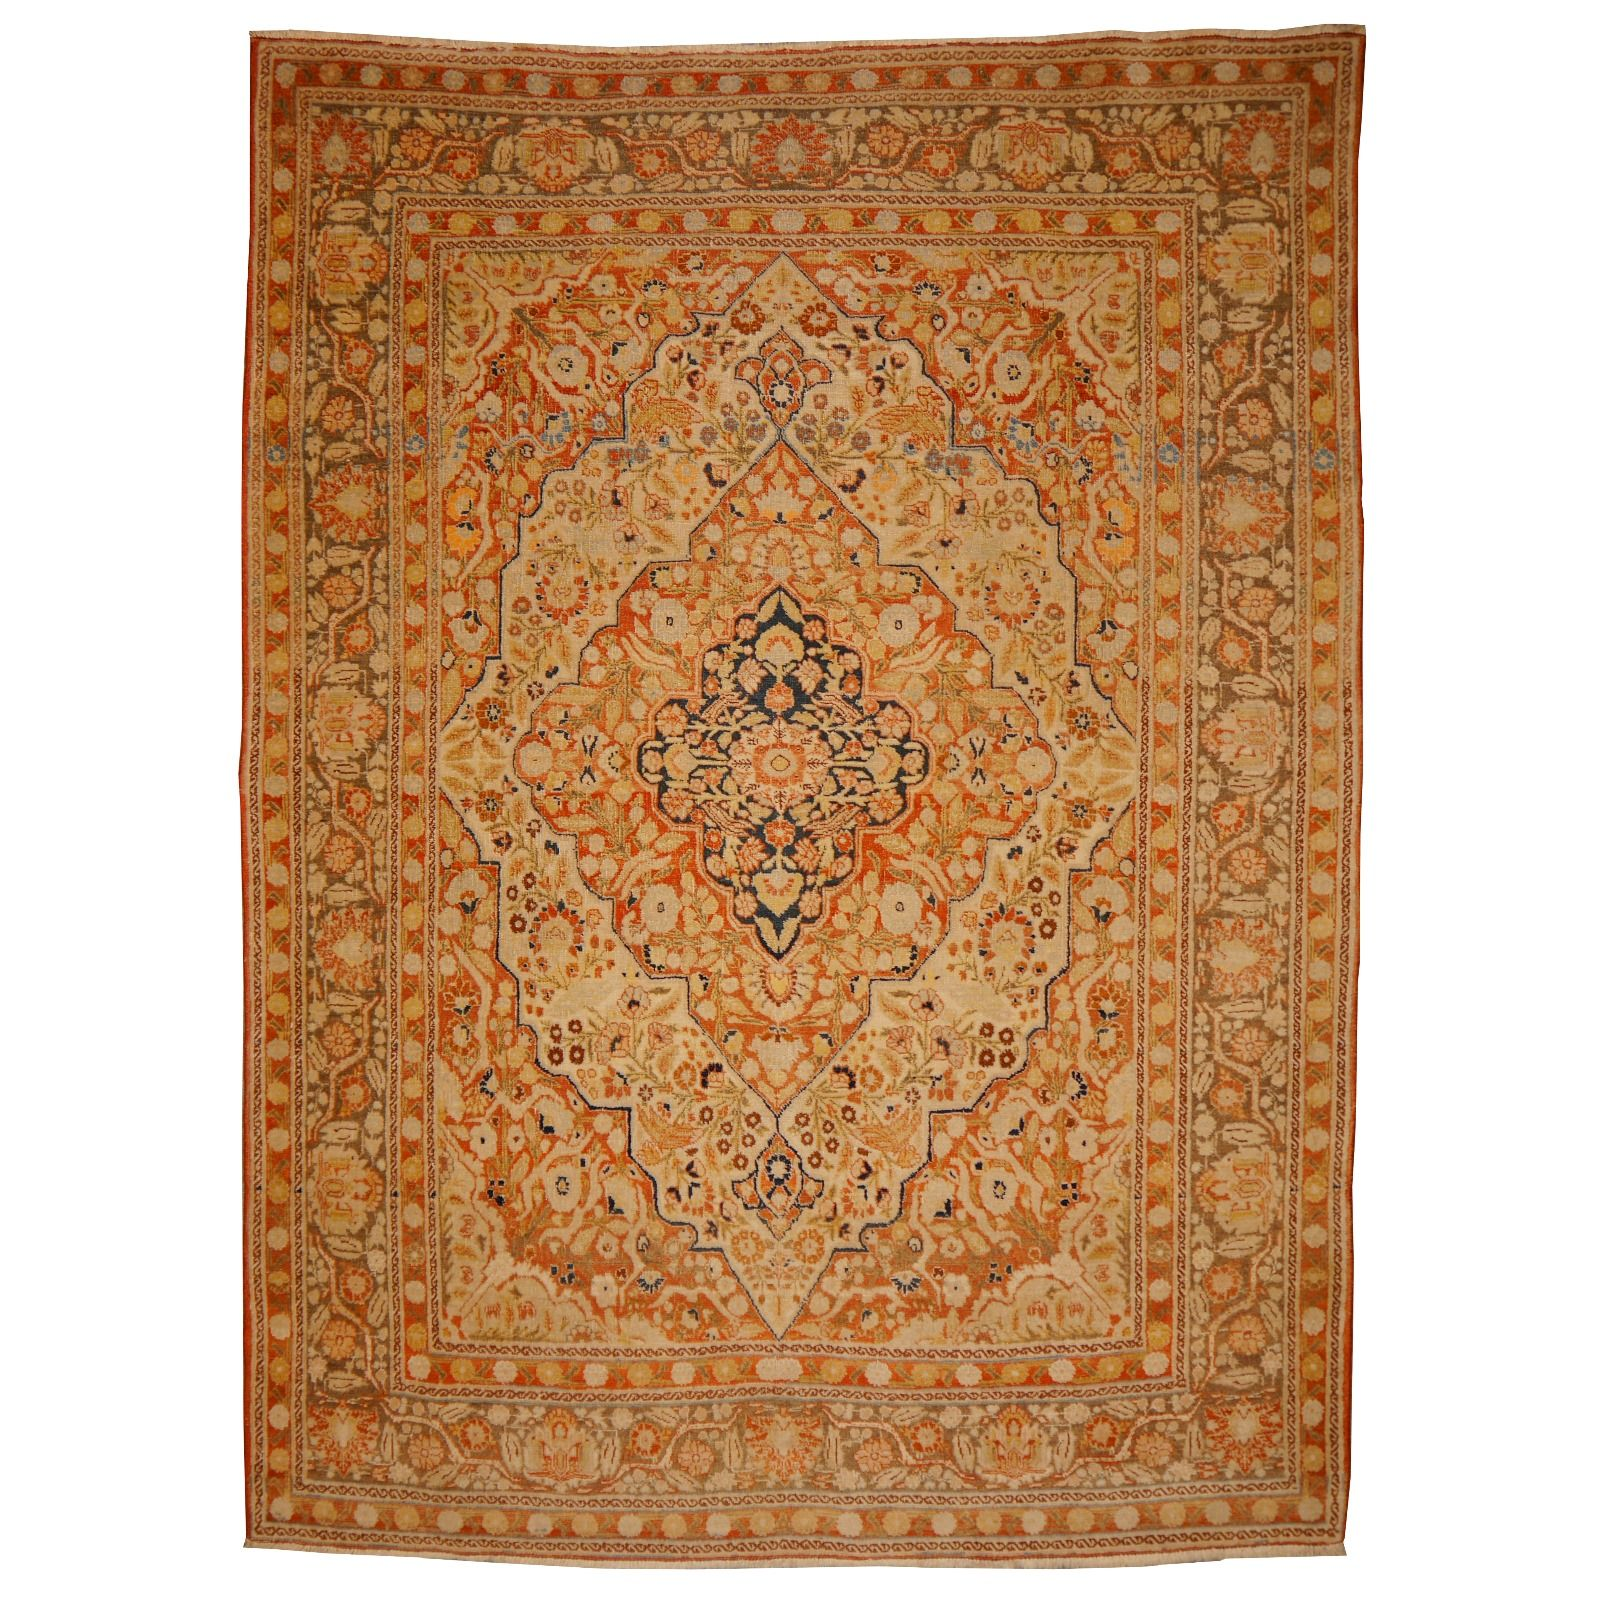 14845 Tabriz Haji Jalili Rug Antique 5 7 X 4 1 Ft 172 X 126 Cm Persian Rug Designs Antique Persian Rug Rugs